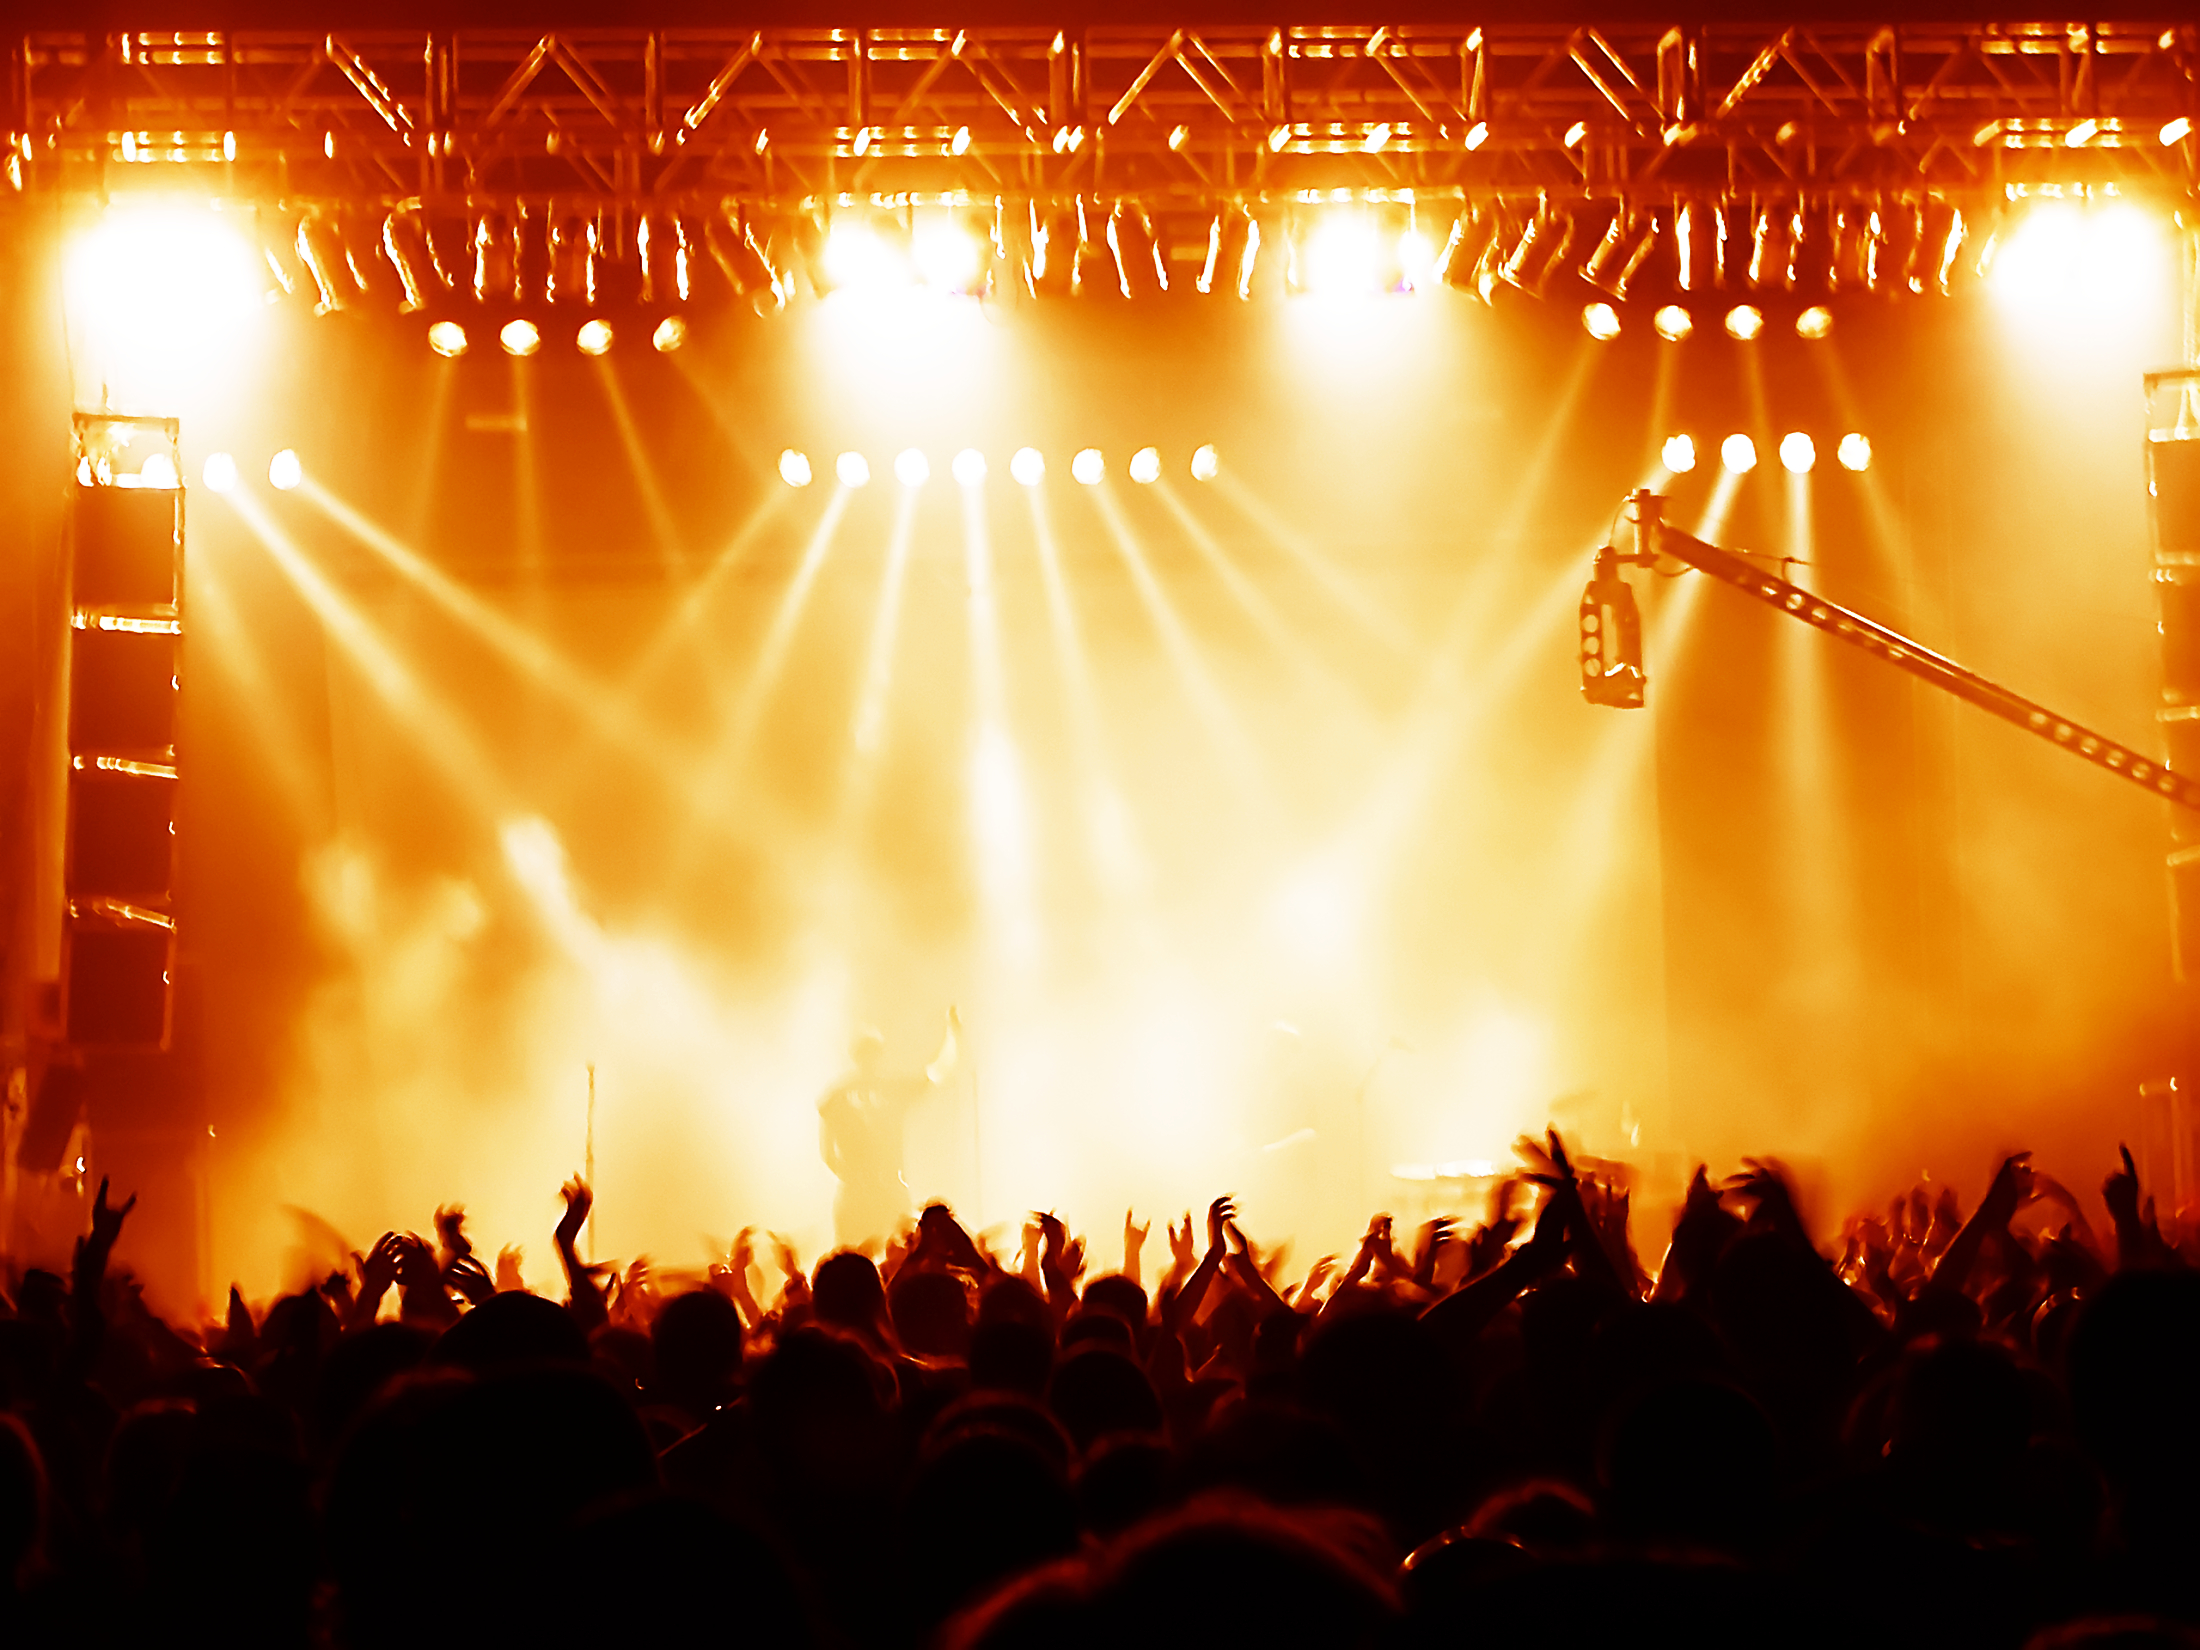 16 Concert Crowd PSD Images